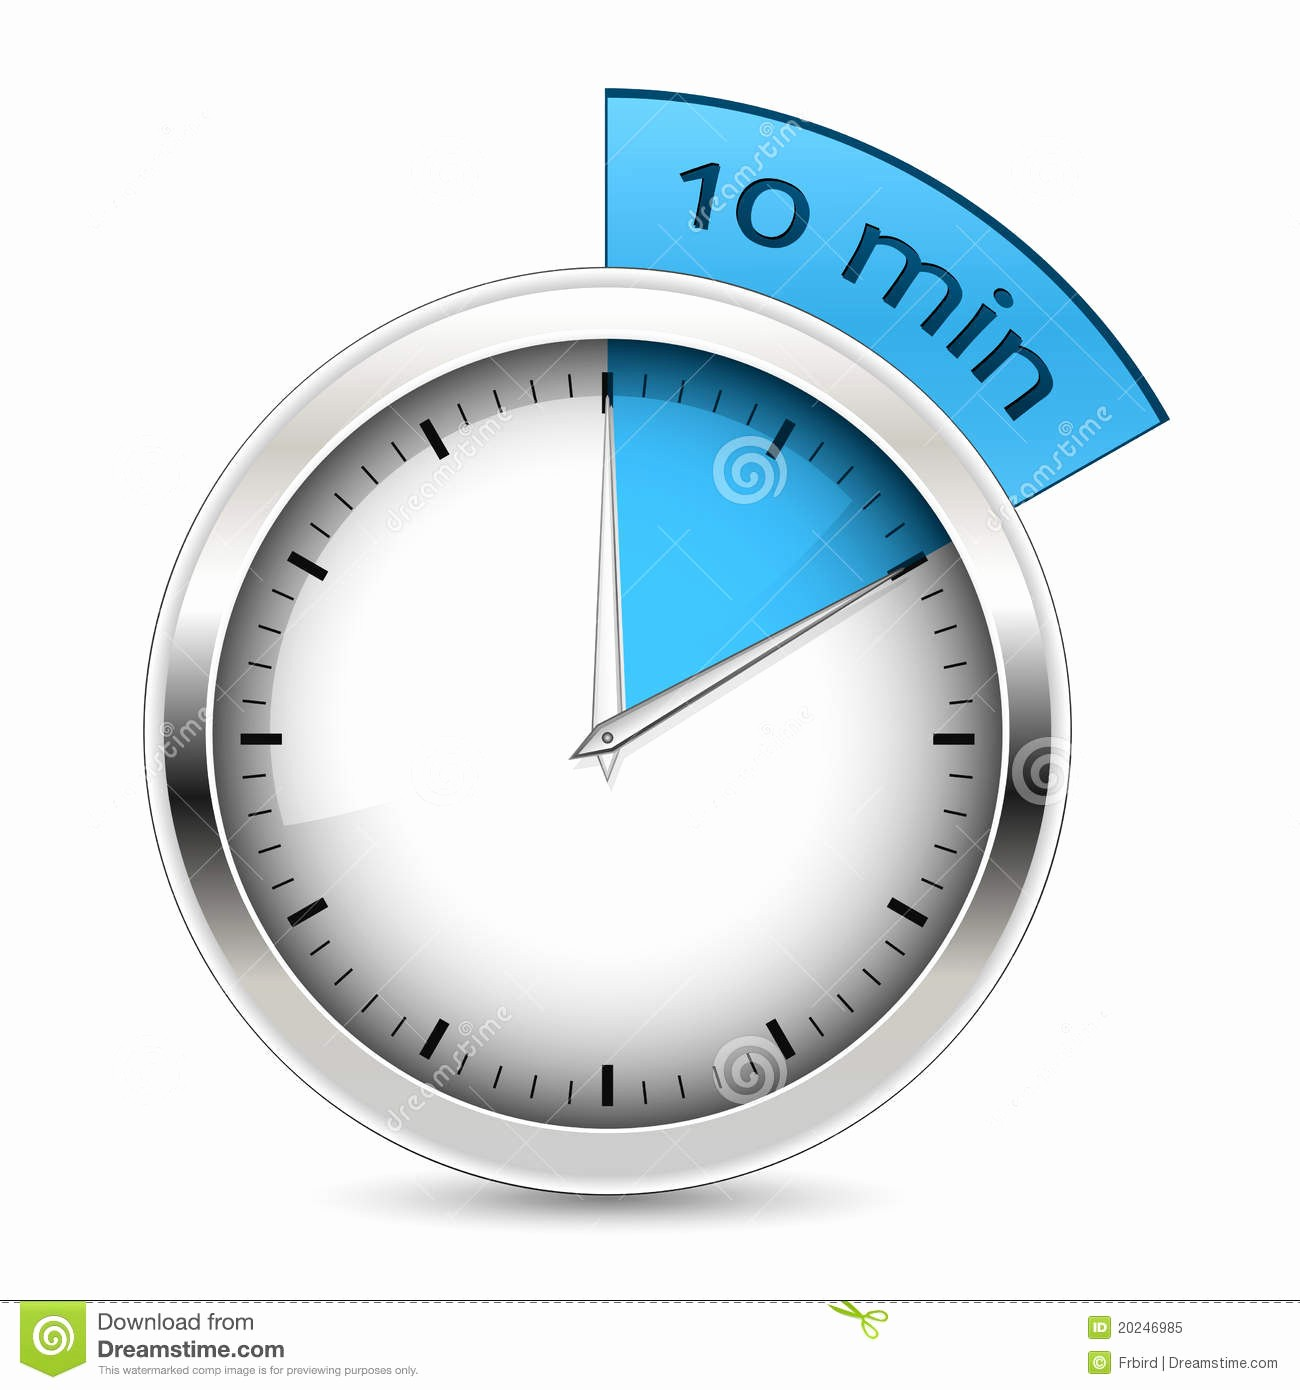 A Timer for 1 Minutes Beautiful 10 Minutes Timer Illustration Stock Vector